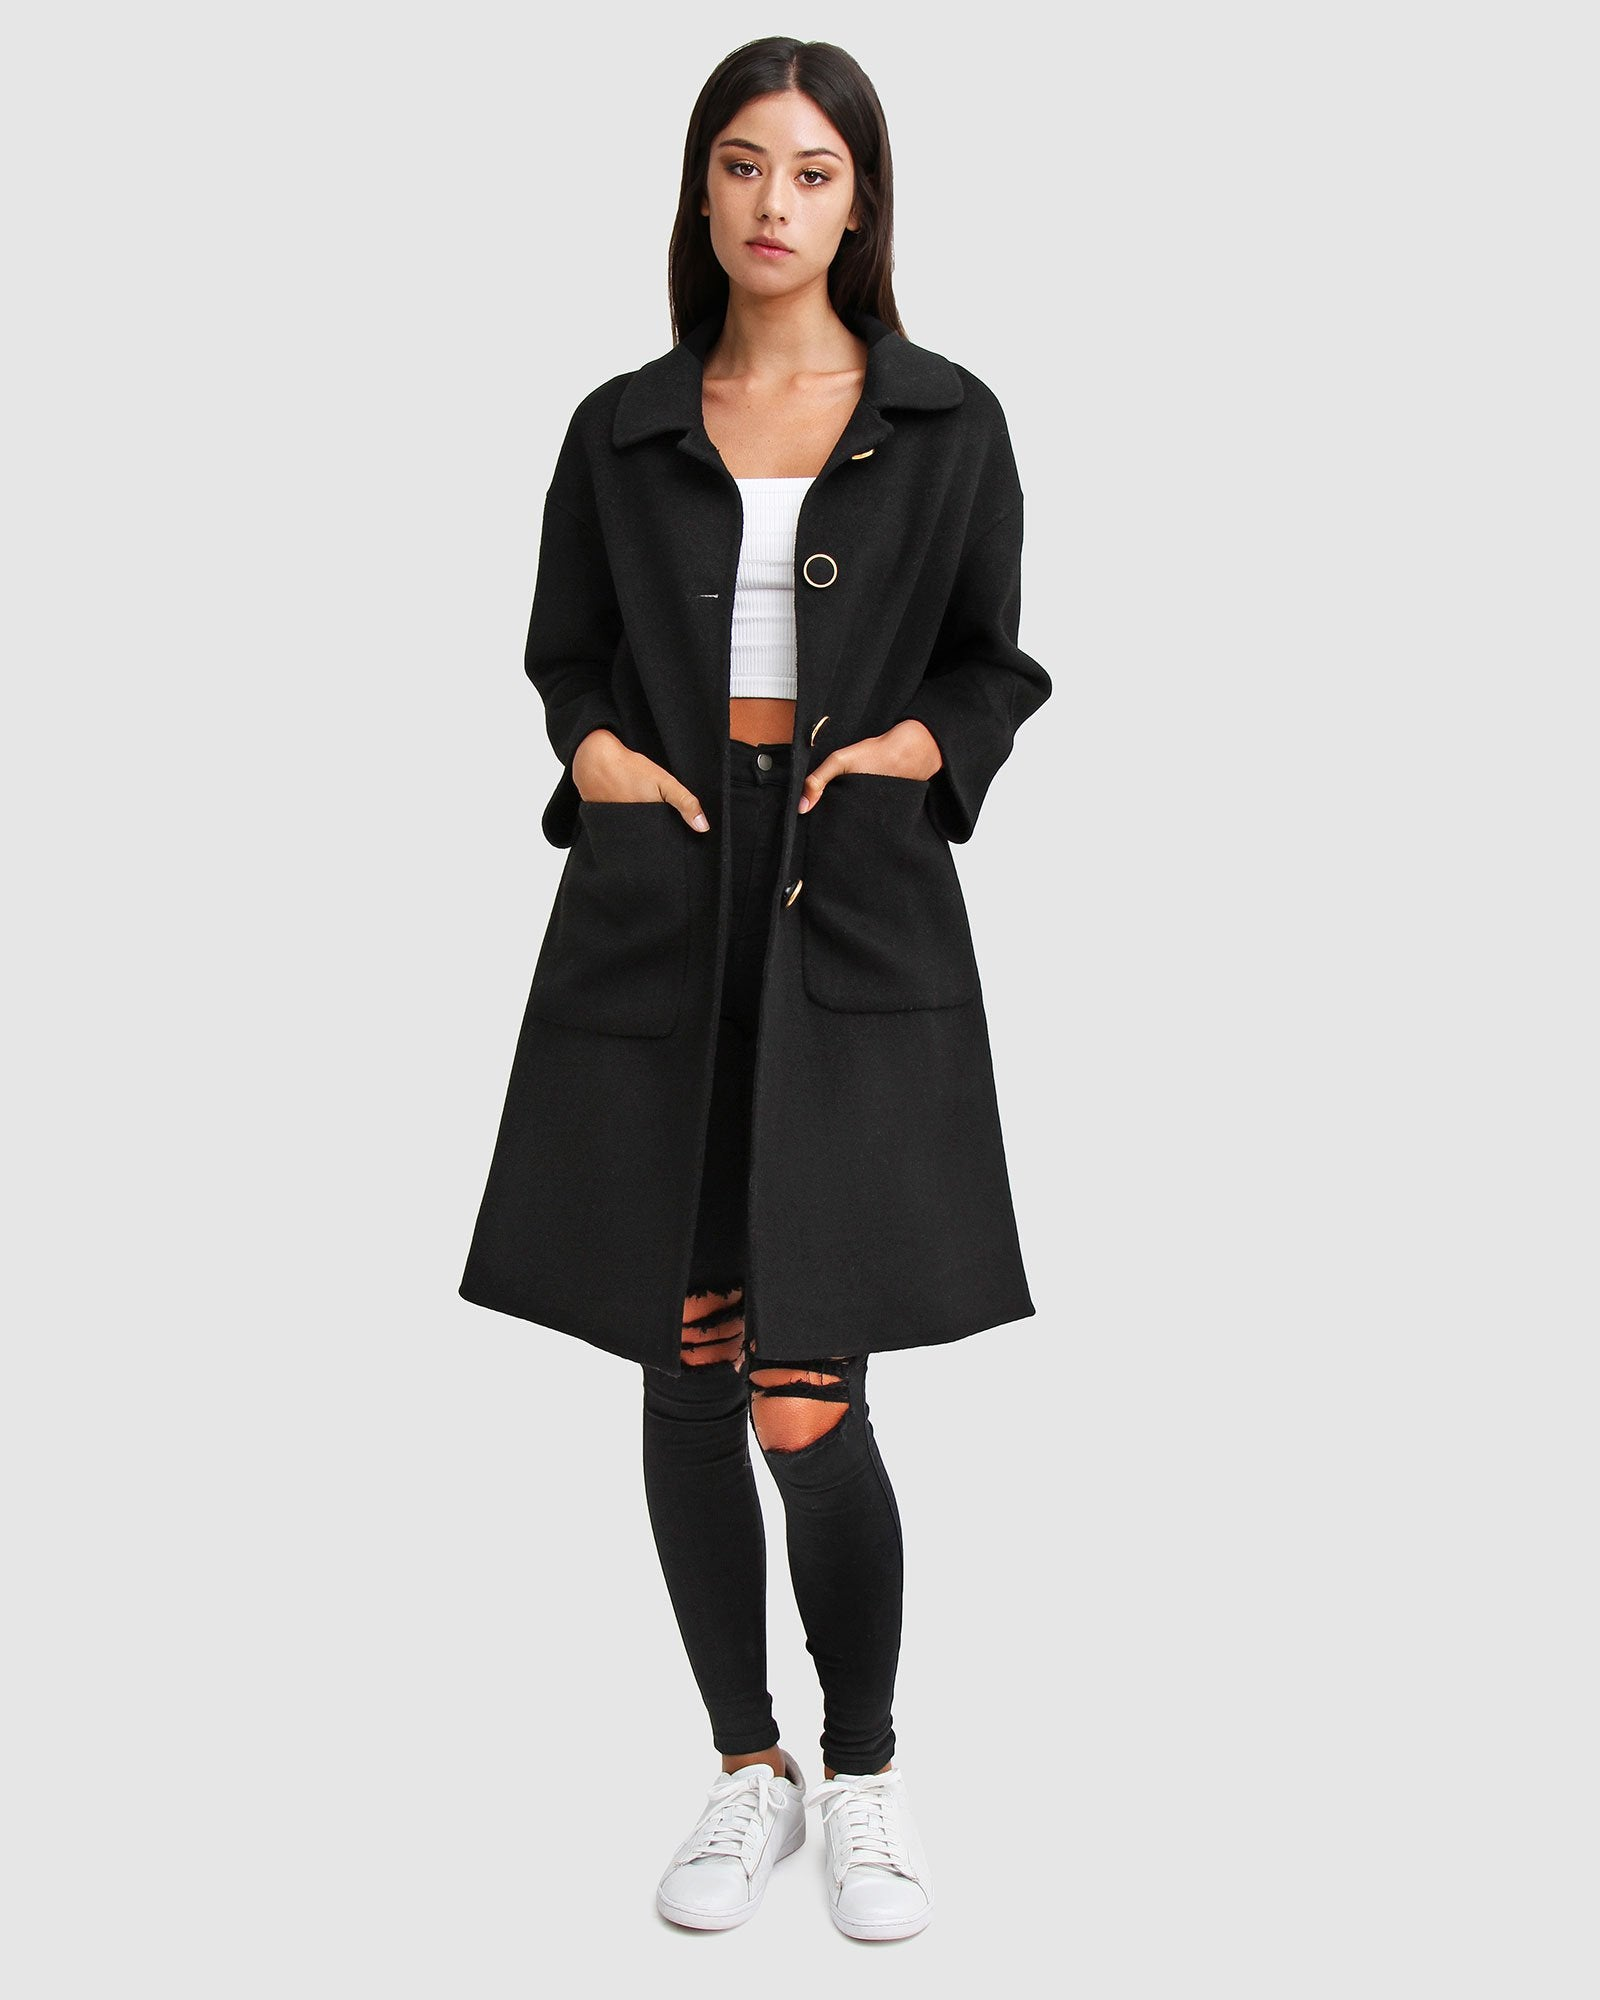 So-Chic-wool-blend-black-coat-front-full-body.jpg